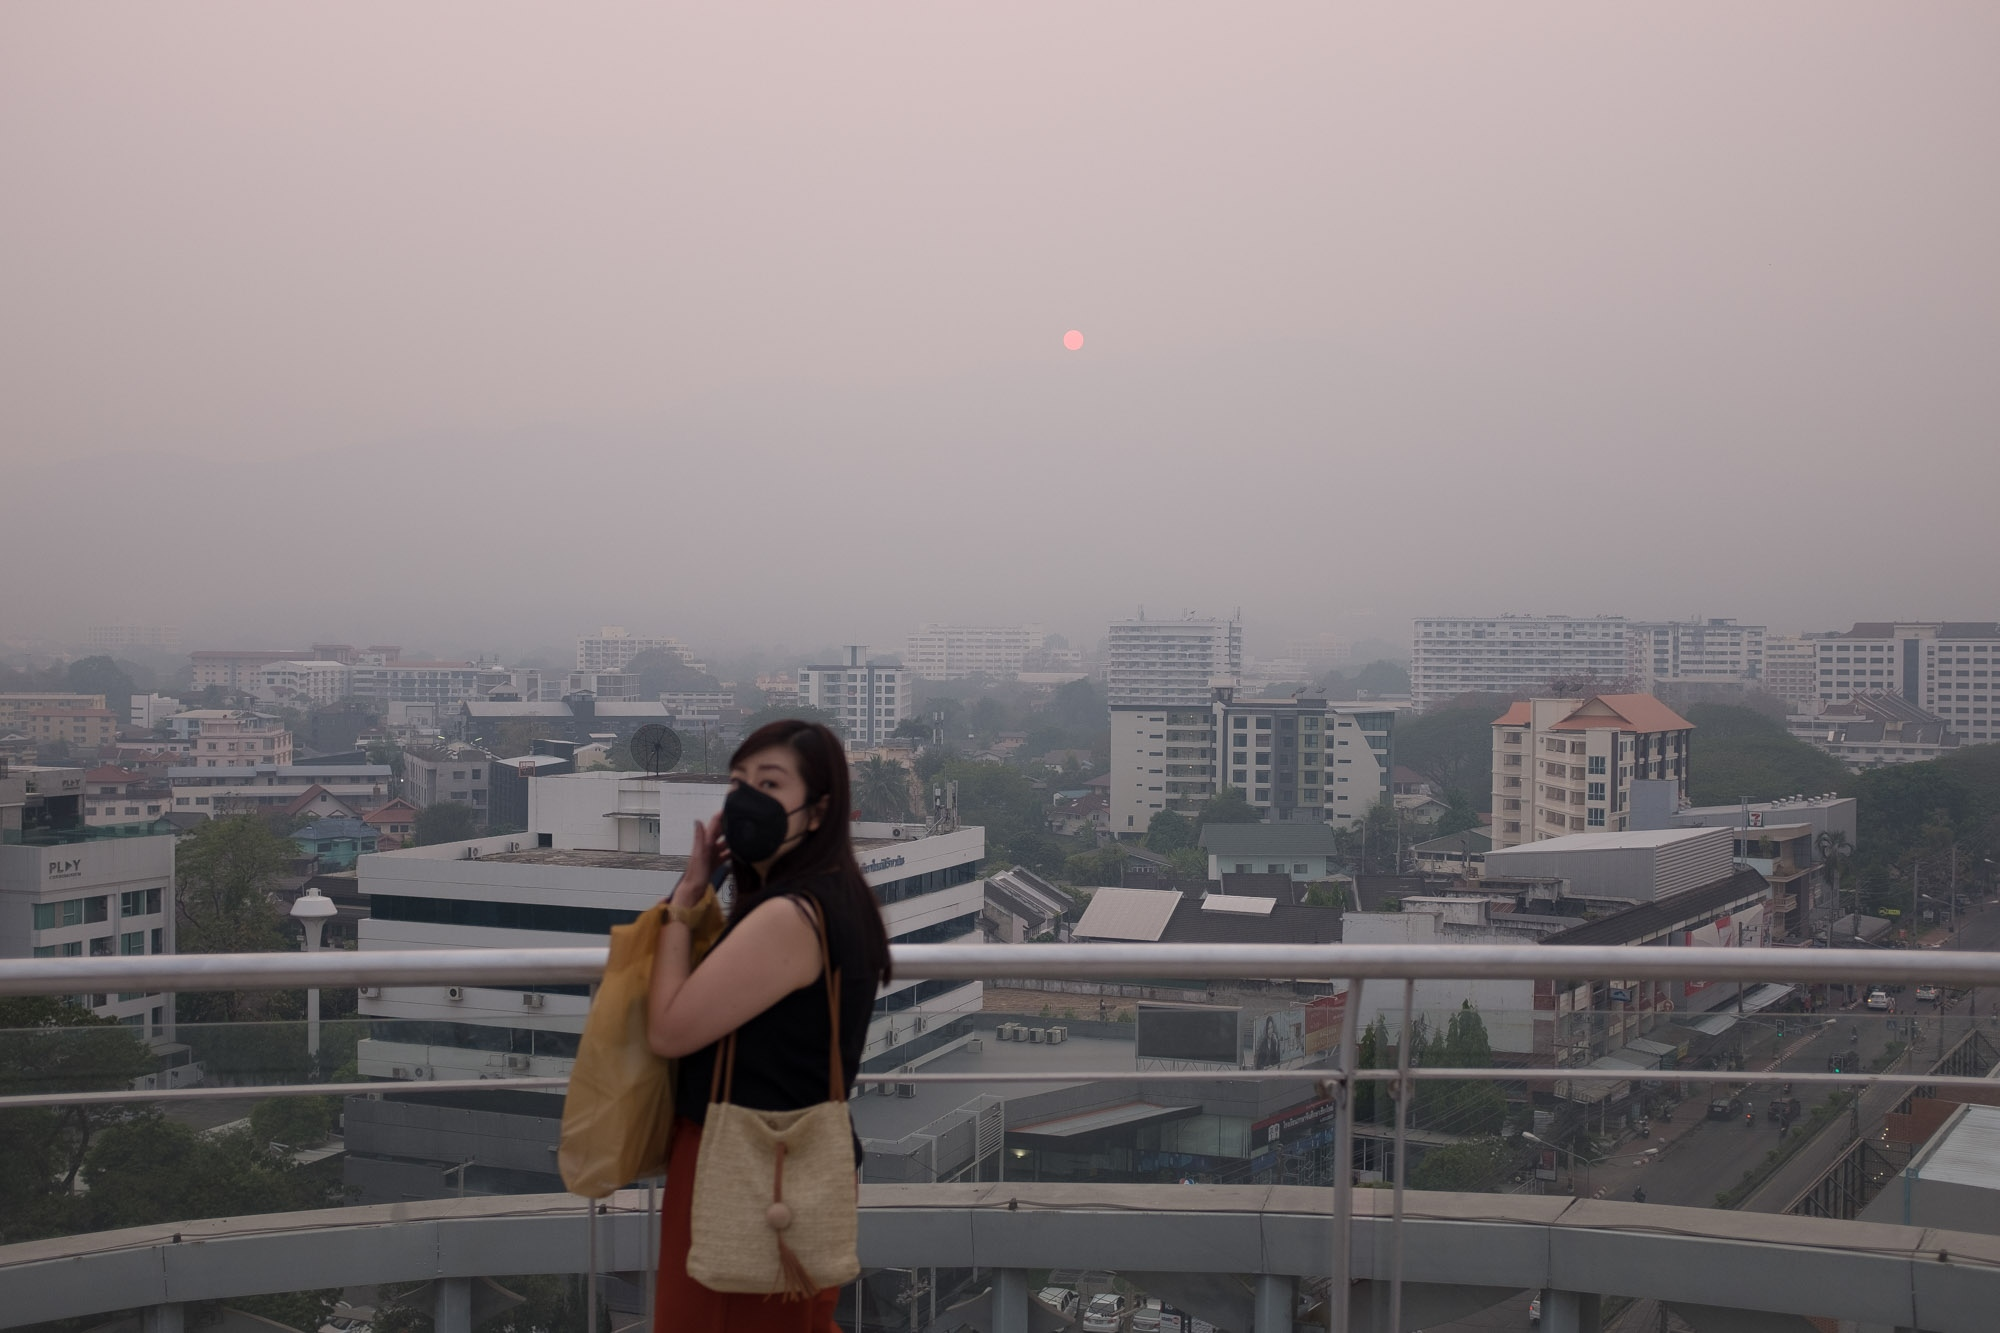 In the evening at the view point on top of the Maya shopping mall, usually are able to see the iconic mountain of Doi Suthep. Due to the heavily smoke arises at it's peak. The mountain disappeared into the smog. Chiang Mai, Thailand.